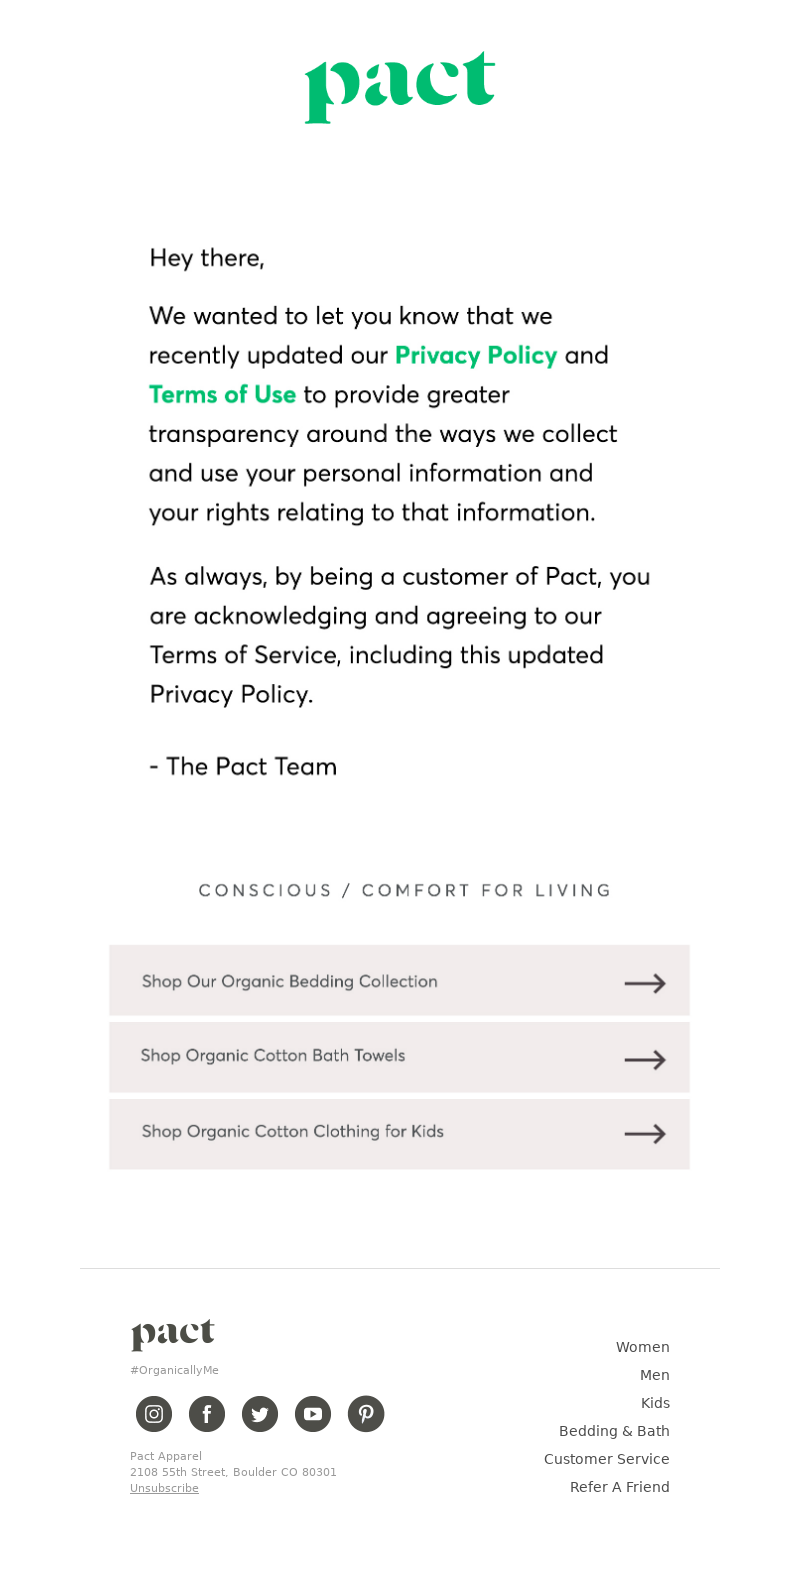 PACT Apparel - We've updated our privacy policy + terms and conditions.